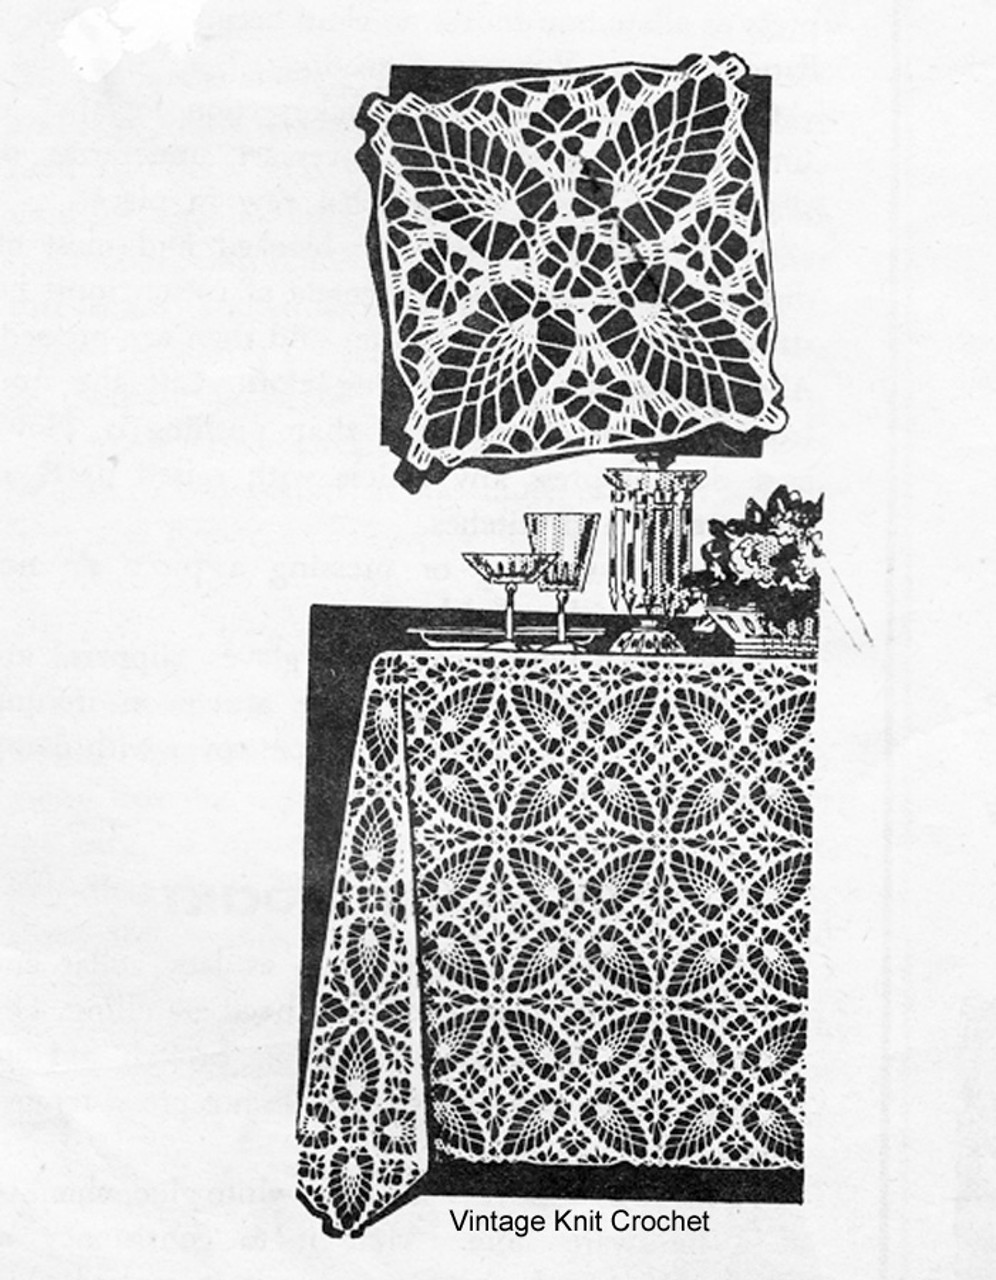 Vintage Pineapple Tablecloth Pattern, Laura Wheeler 839